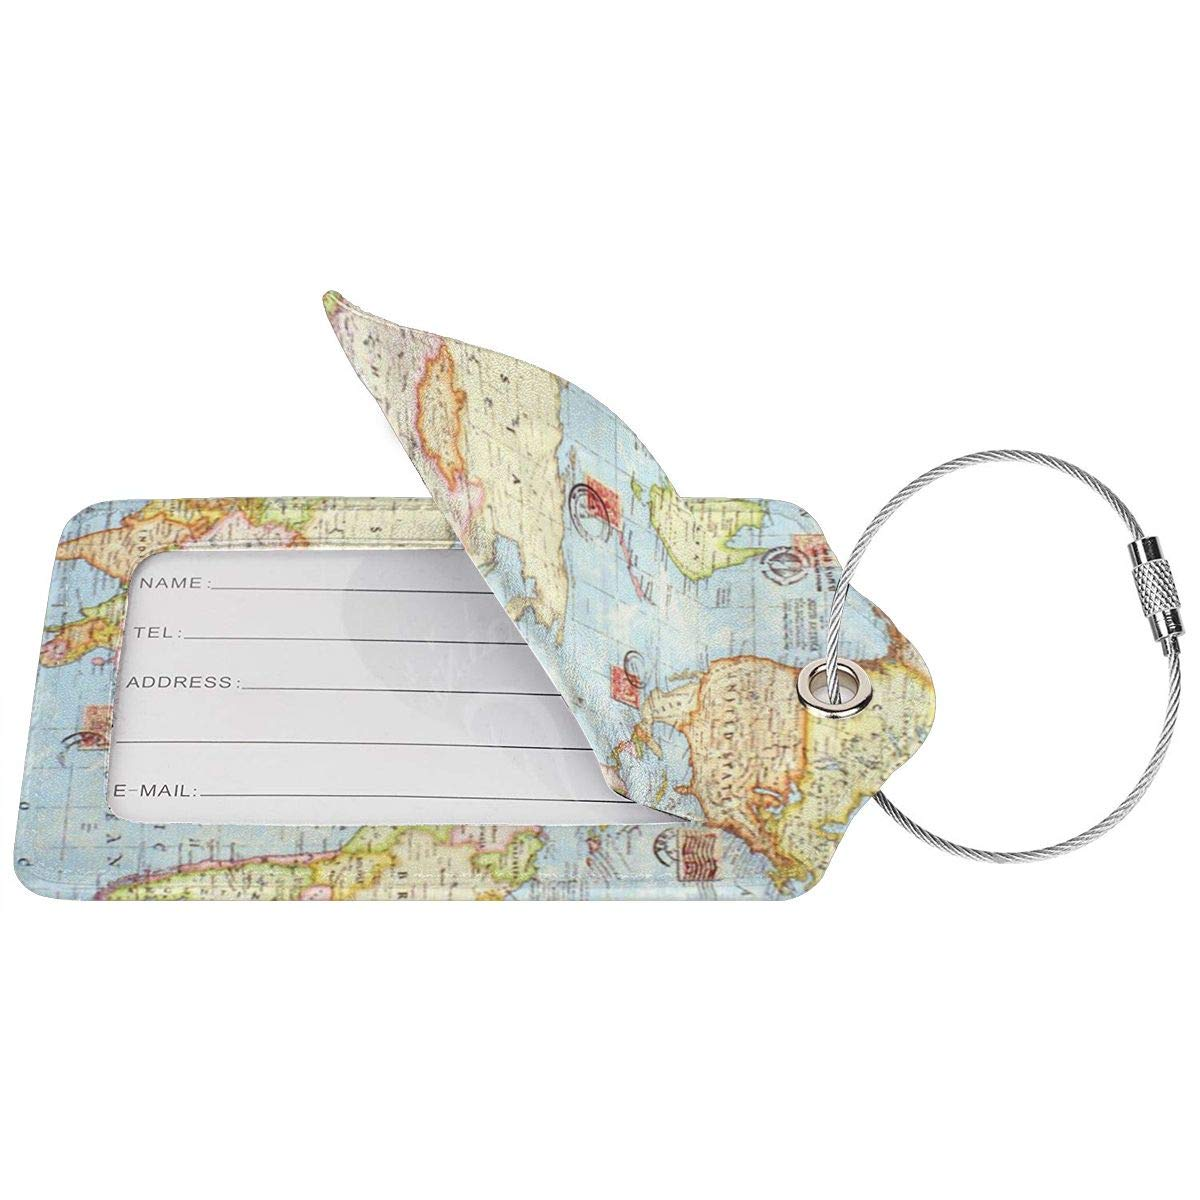 2 World Map Business Trip Luggage Tags Information Labels Leather Cover Owner Contact Information Card For Suitcase//Baggage//Boarding Case//Backpack